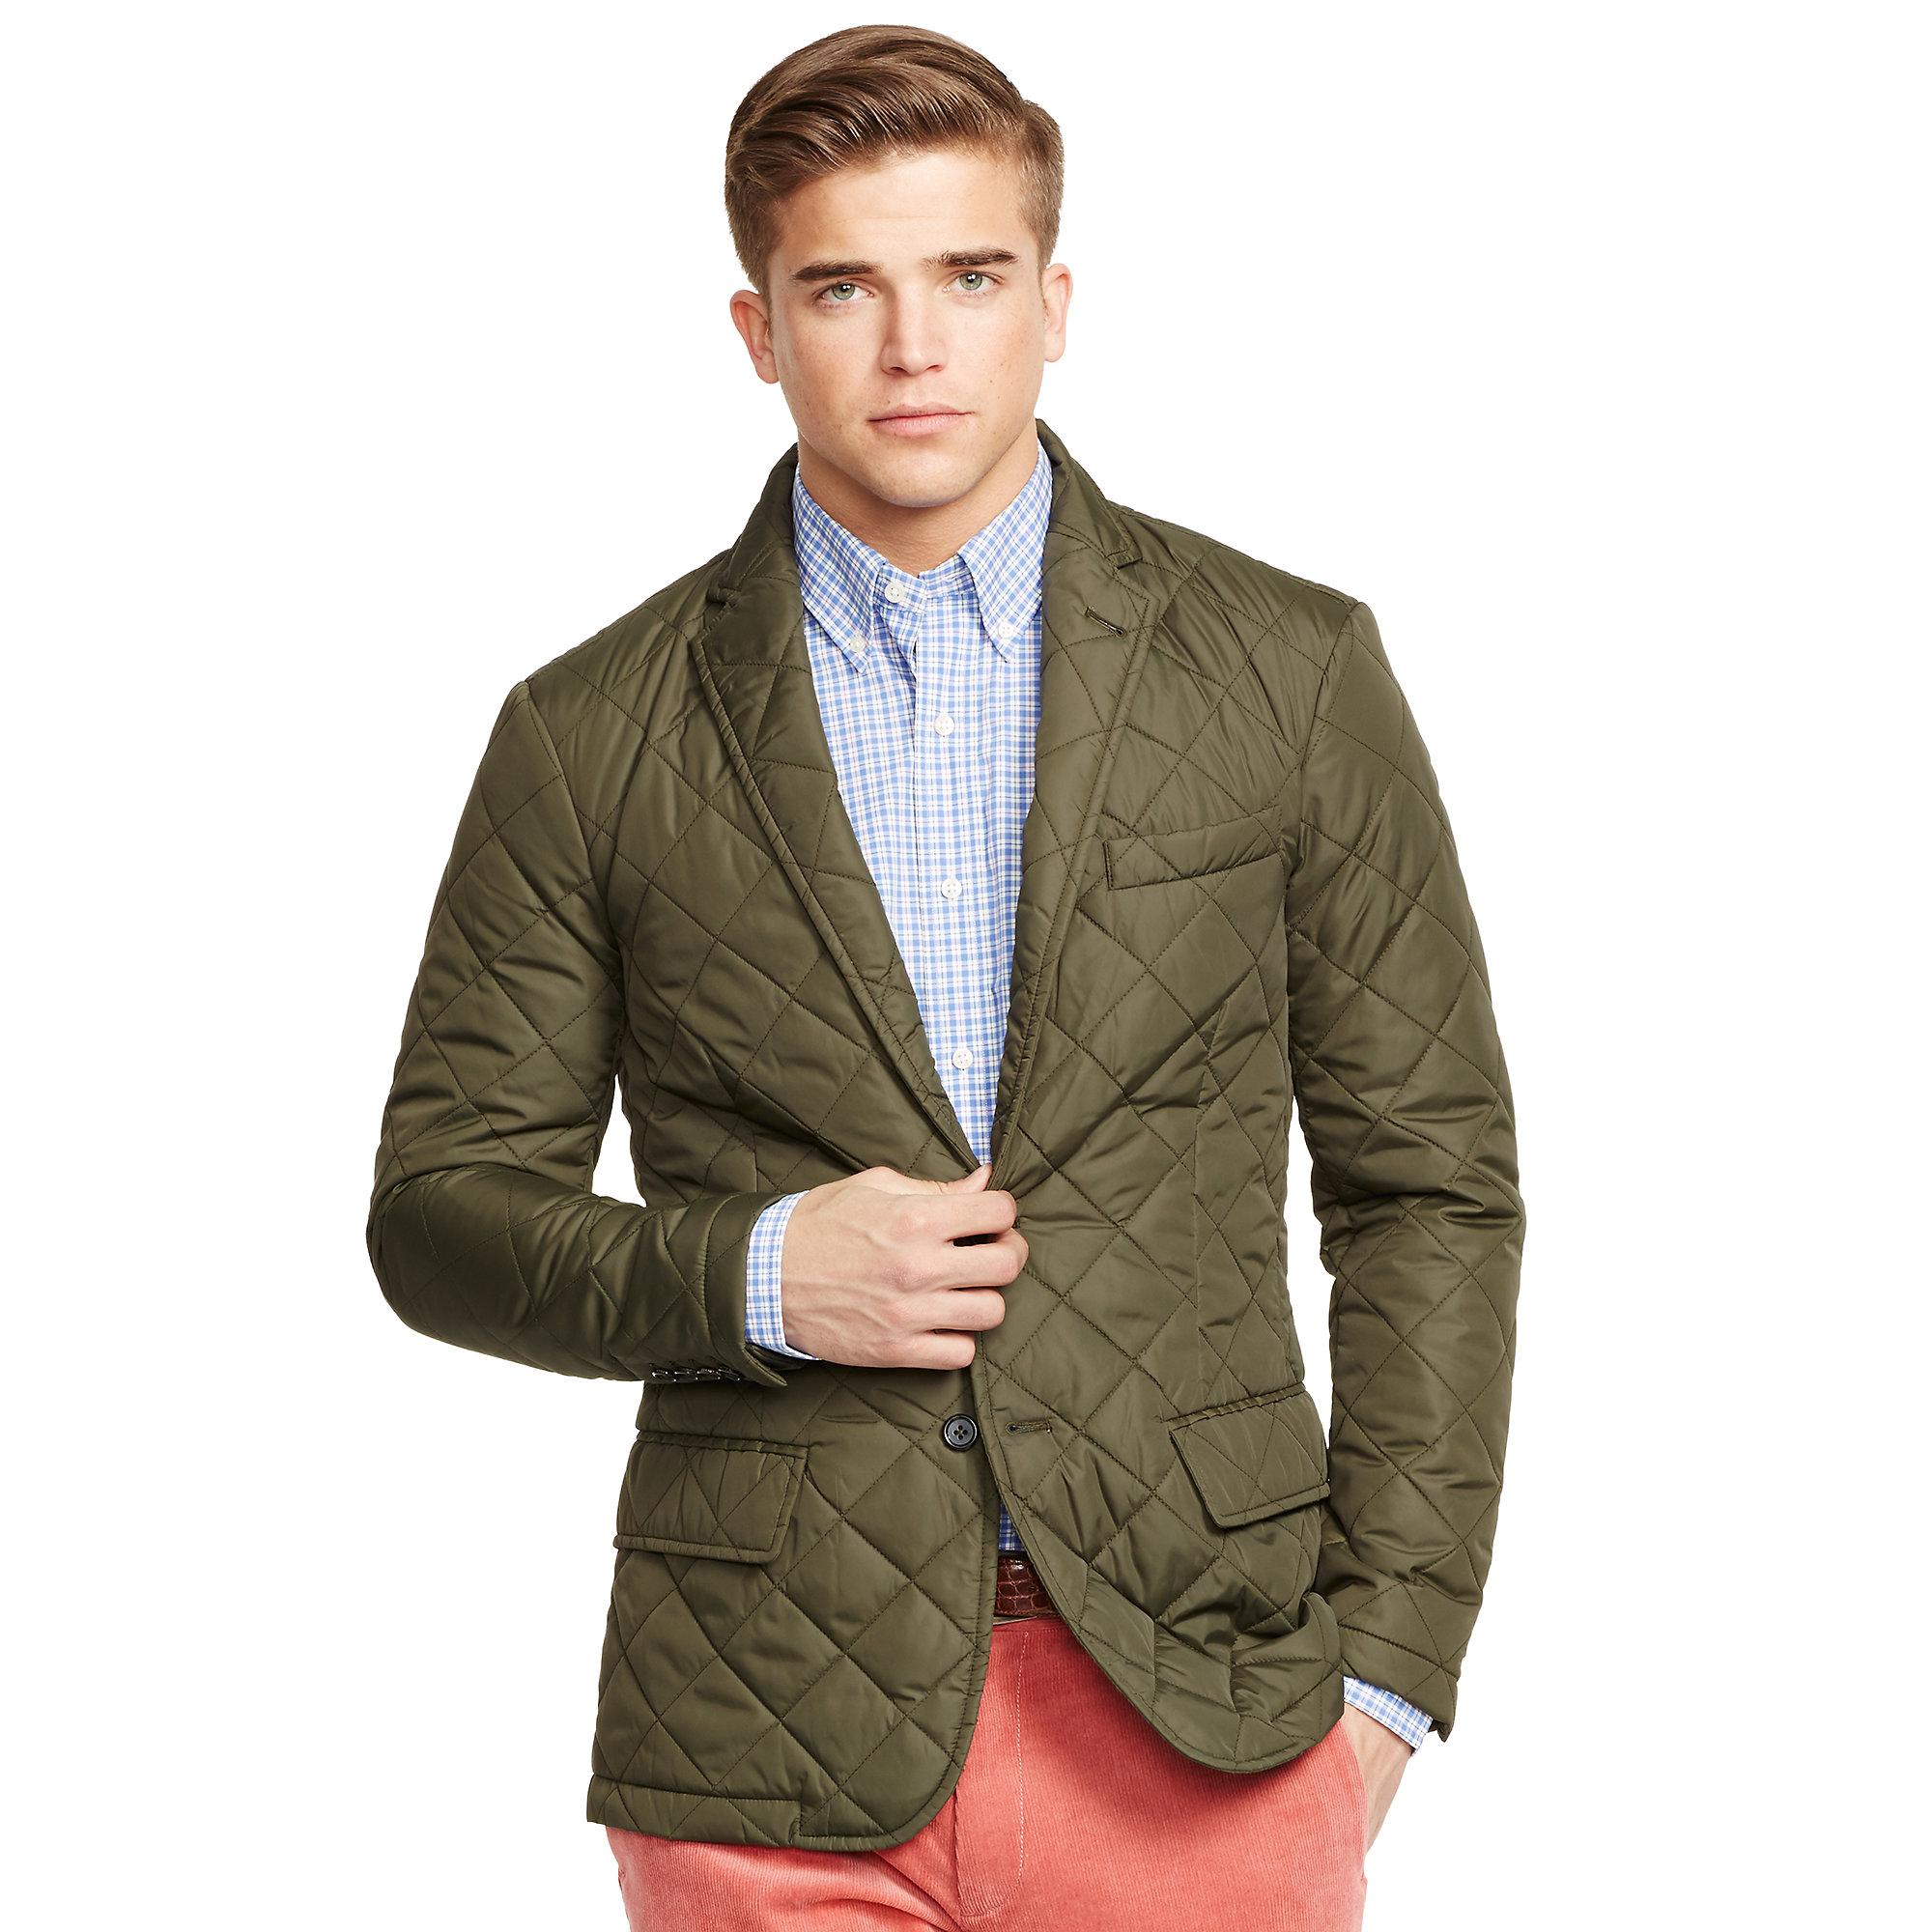 Polo ralph lauren quilted sport coat in green for men for Polo shirt with sport coat